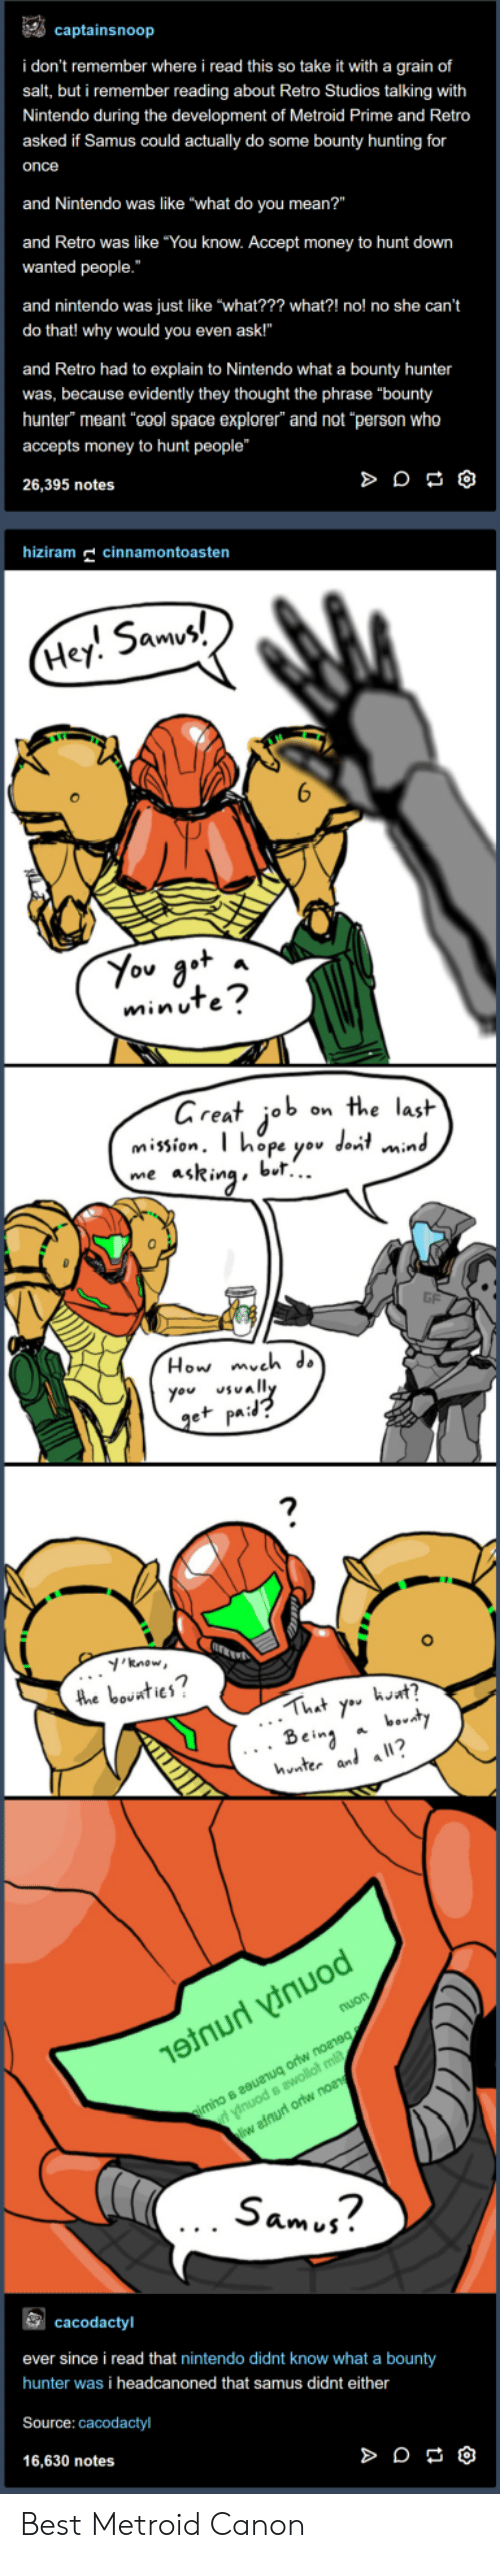 """samus: captainsnoop  i don't remember where i read this so take it with a grain of  salt, but i remember reading about Retro Studios talking with  Nintendo during the development of Metroid Prime and Retro  asked if Samus could actually do some bounty hunting for  once  and Nintendo was like """"what do you mean?""""  and Retro was like """"You know. Accept money to hunt down  wanted people.  and nintendo was just like """"what??? what?! no! no she can't  do that! why would you even ask!""""  and Retro had to explain to Nintendo what a bounty hunter  was, because evidently they thought the phrase """"bounty  hunter"""" meant cool space explorer"""" and not """"person who  accepts money to hunt people""""  26,395 notes  hizm cinnamontoasten  5am  Hey. Smv  minuTe  areat job on the lasit  mission. T hope yov dont min  me asRinabl..  0  How mveh ds  you vally  e+ pa:  'know  2  hnter al a?  Sam j?  cacodactyl  ever since i read that nintendo didnt know what a bounty  hunter was i headcanoned that samus didnt either  Source: cacodactyl  16,630 notes Best Metroid Canon"""